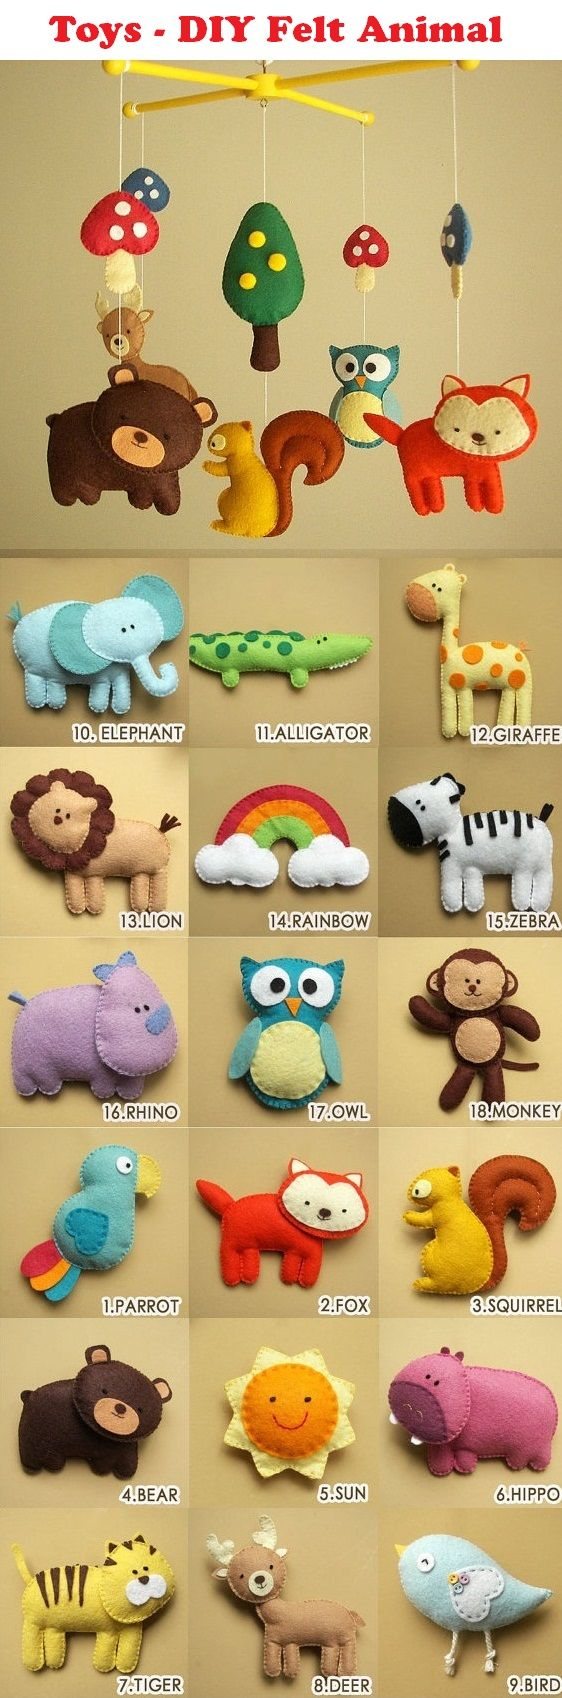 Toys - DIY Felt Animals